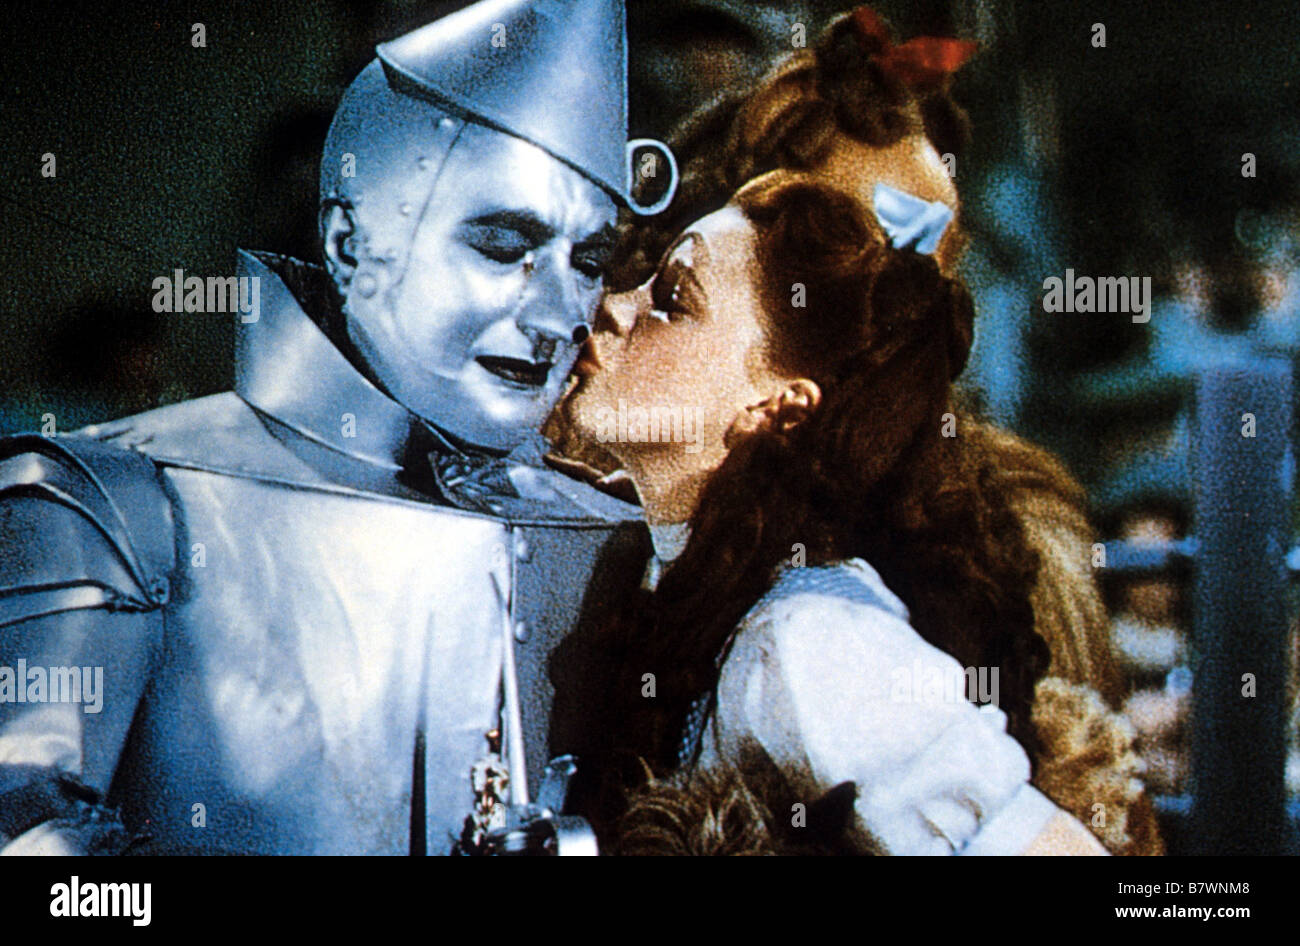 The Wizard of Oz Année: 1939 USA Jack Haley, Judy Garland Réalisateur: Victor Fleming Photo Stock